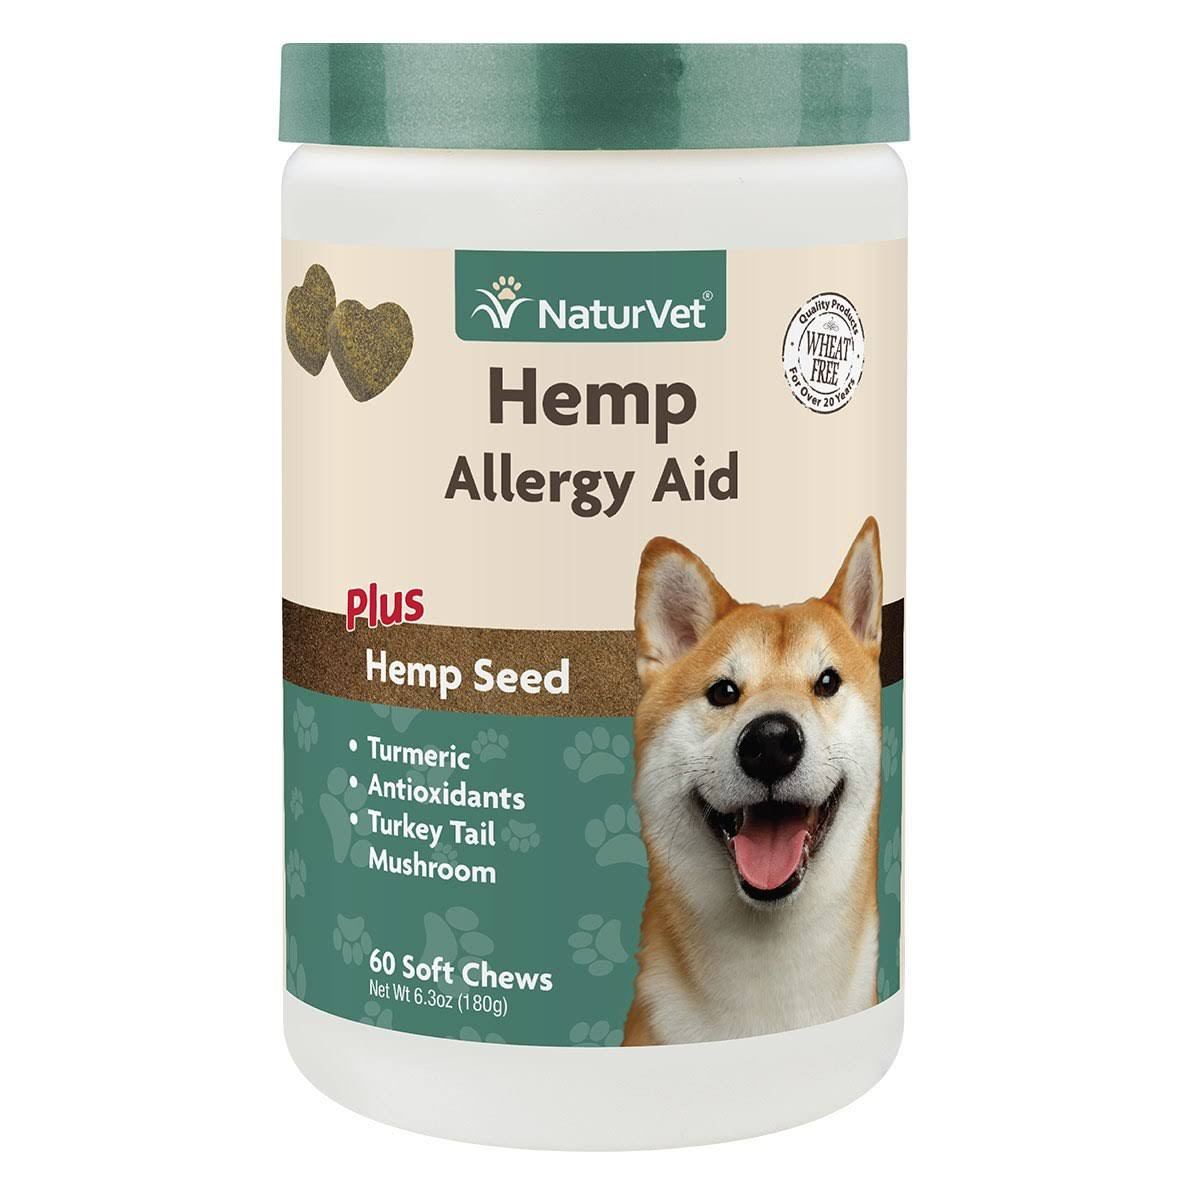 NaturVet Hemp Allergy Aid Soft Chews 60 ct